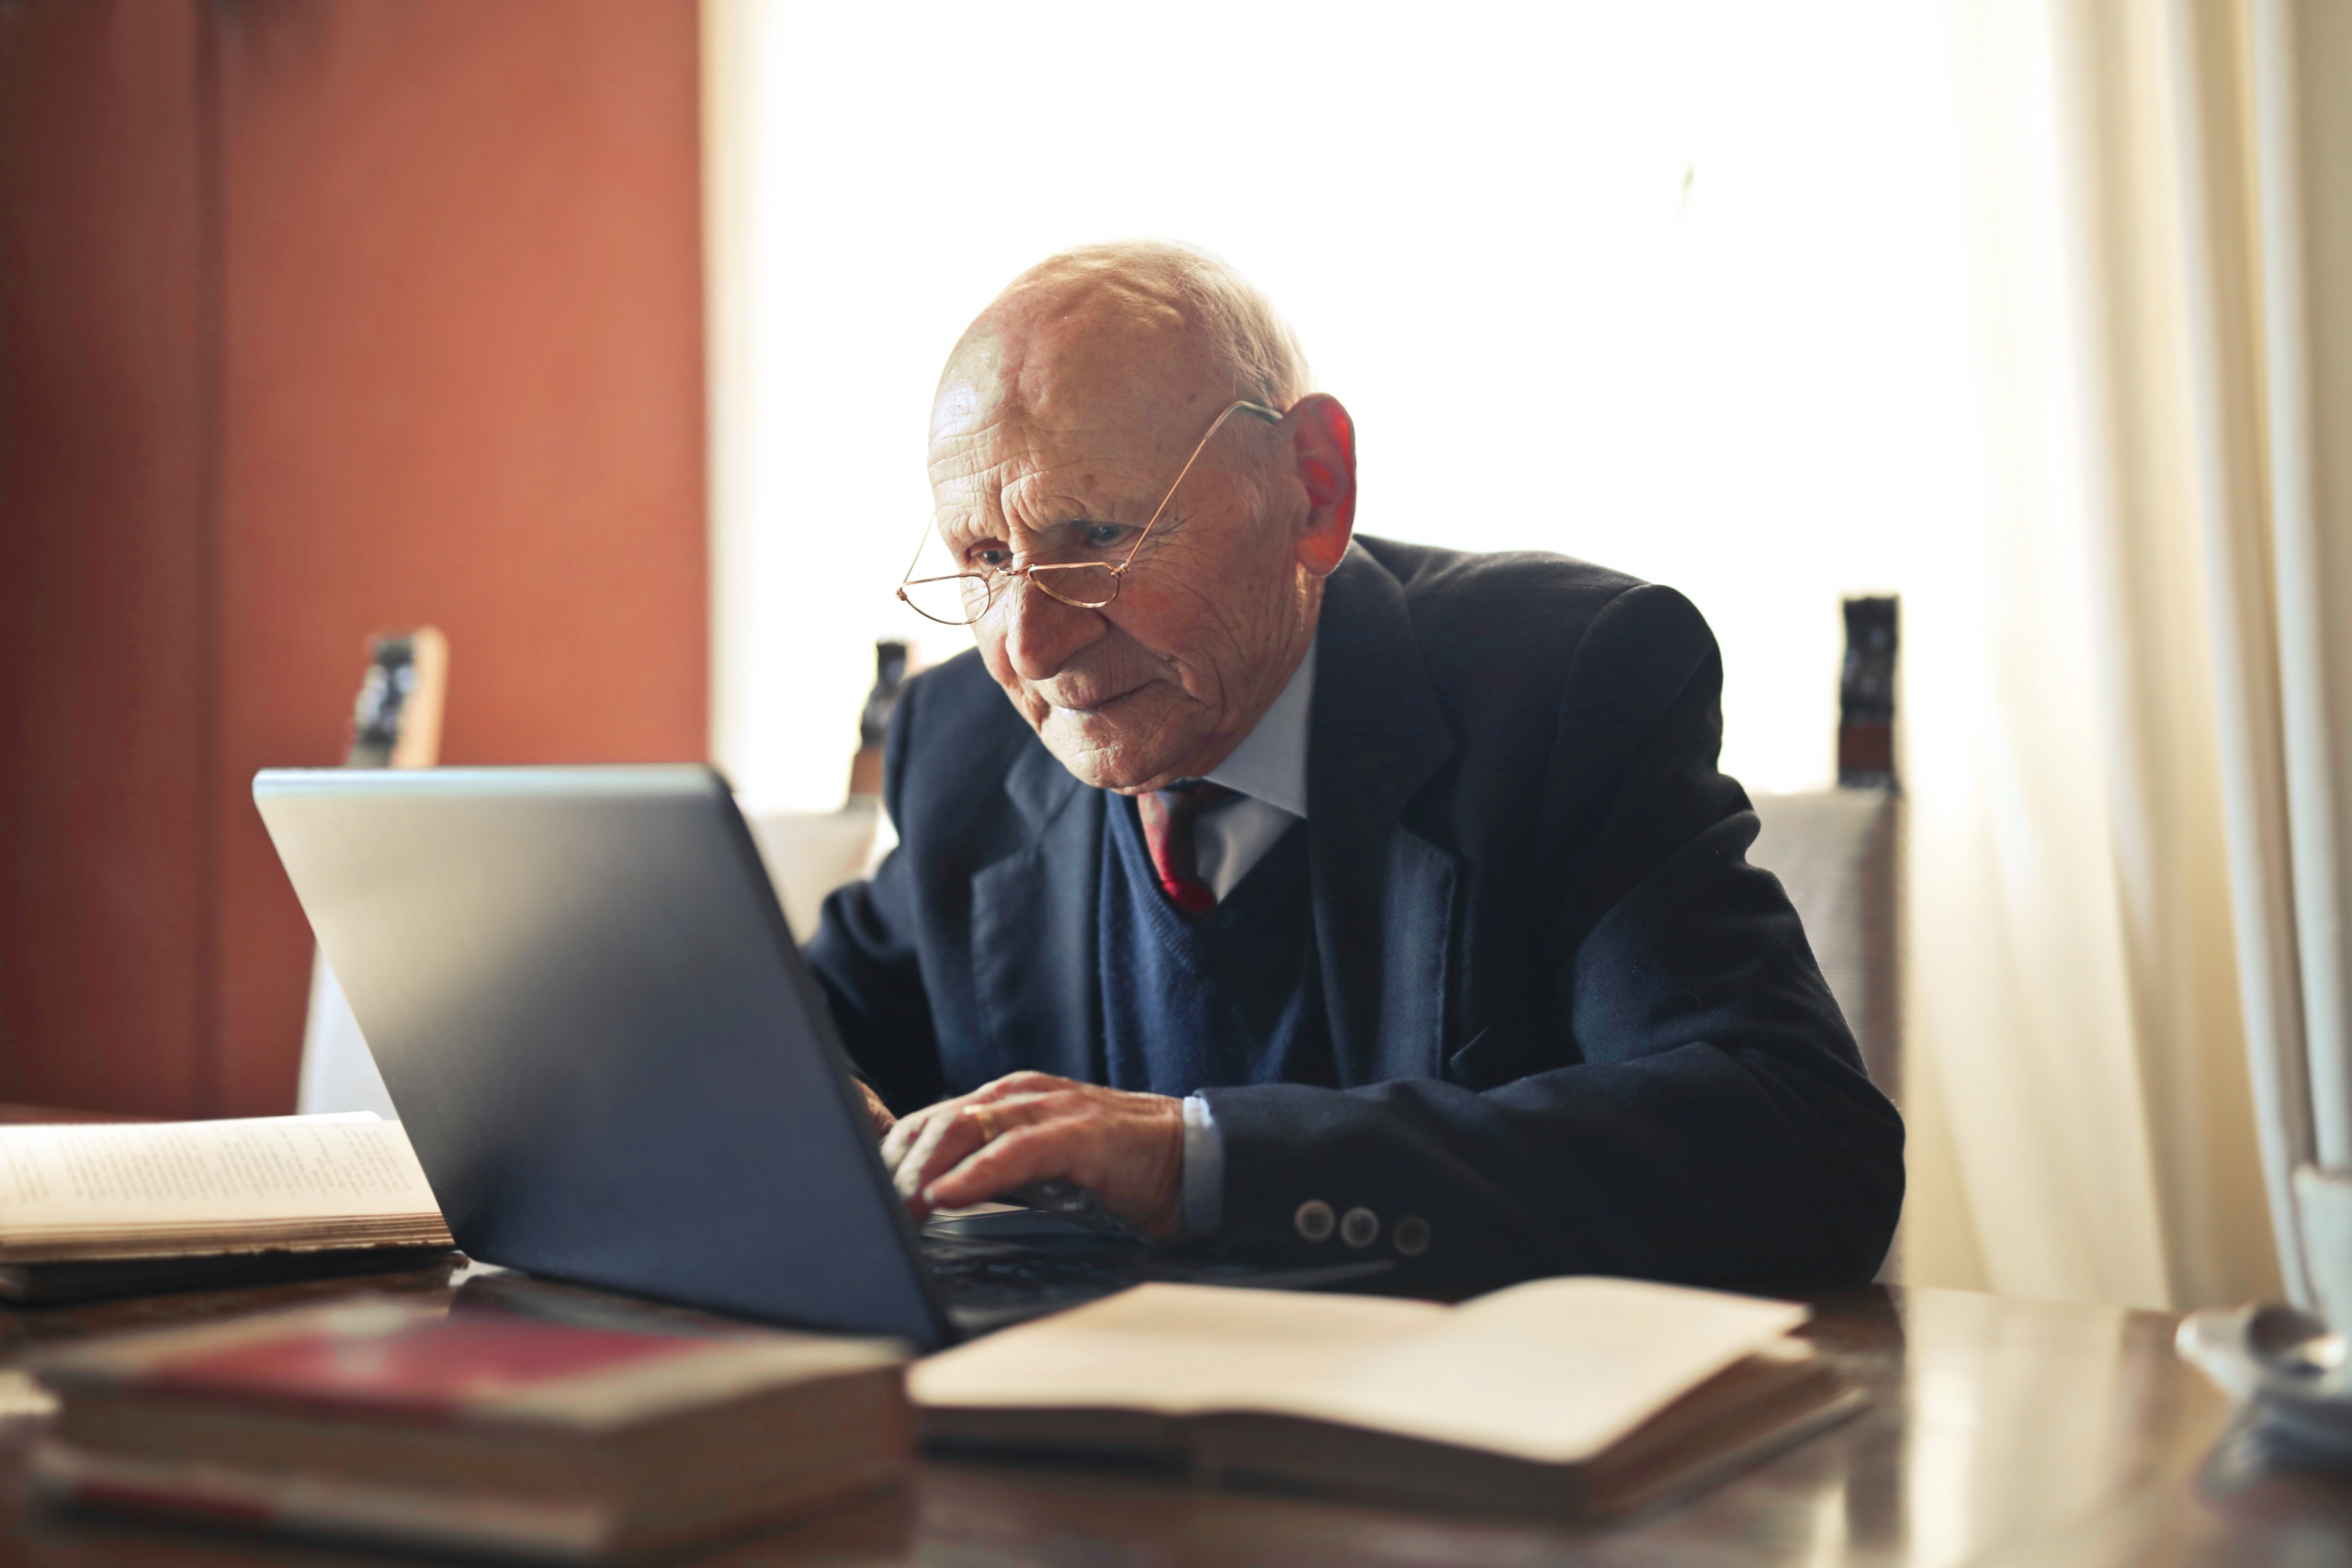 serious senior man in formal suit working on laptop at 3823494 1 scaled